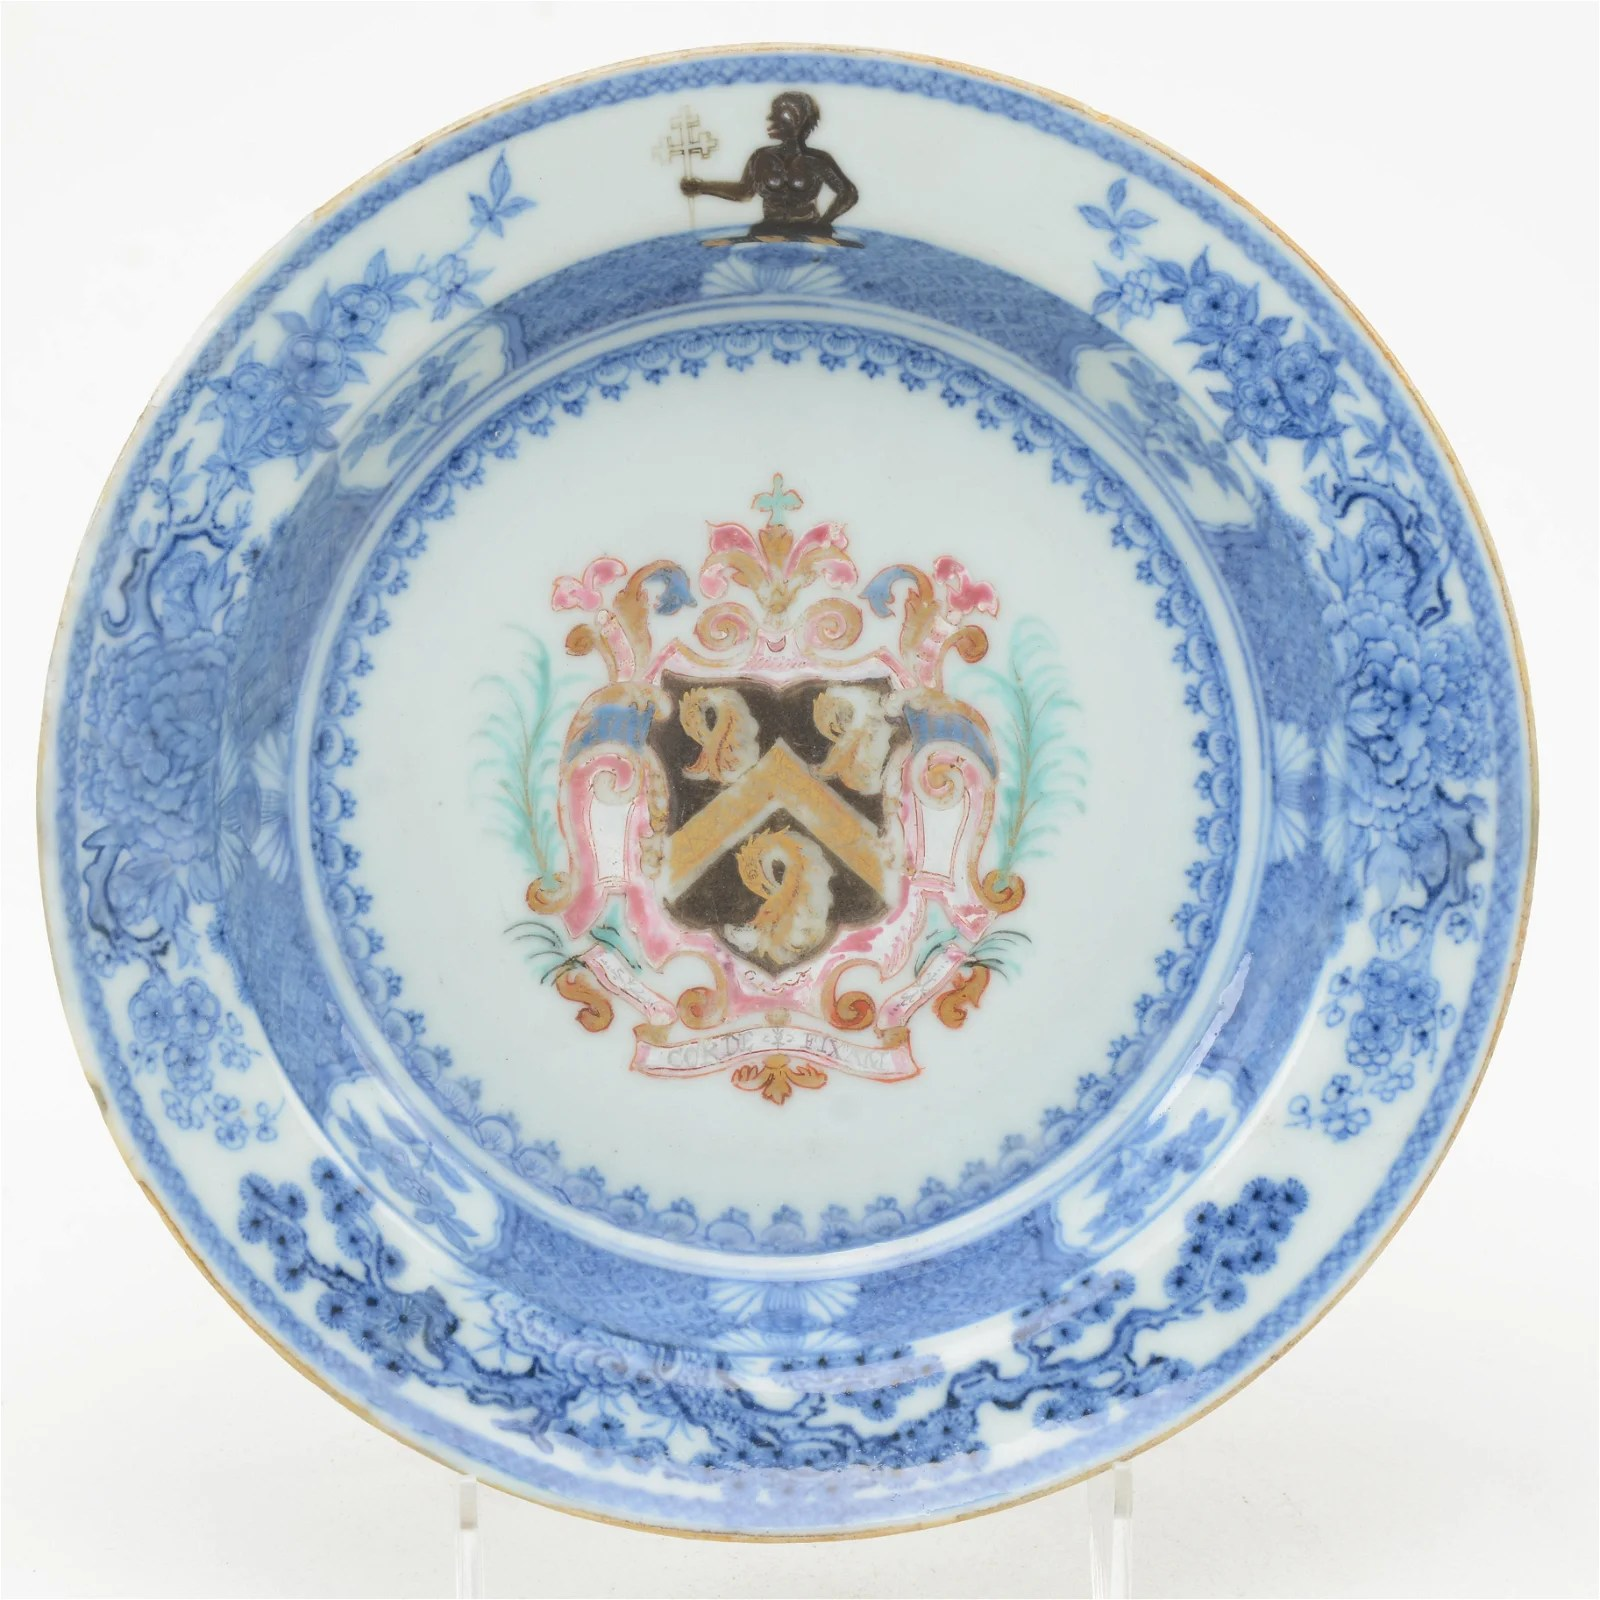 Porcelain Soup Plate, Chinese Export 18th C.